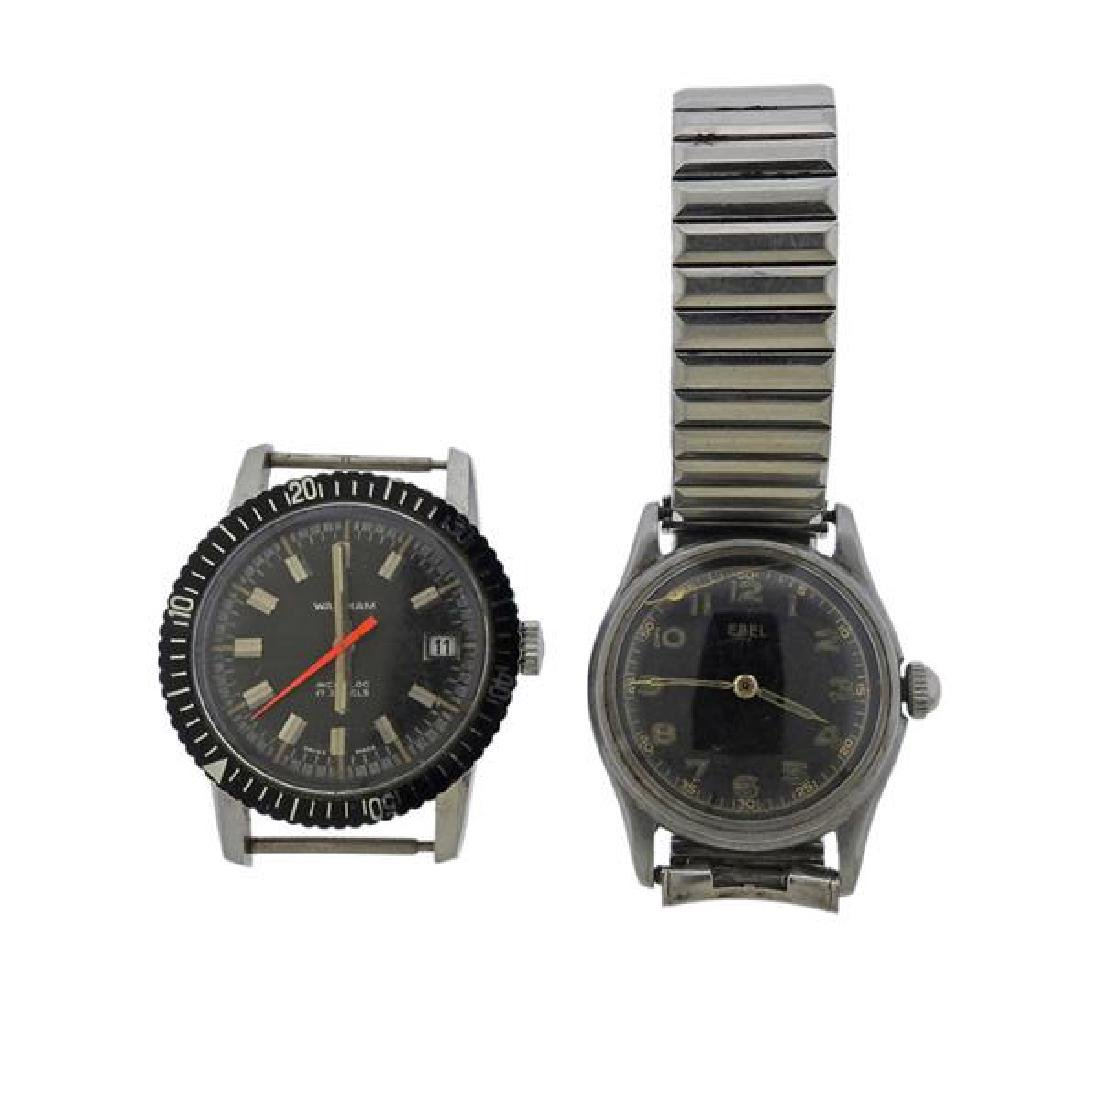 Waltham Ebel Stainless Steel Watch Lot of 2